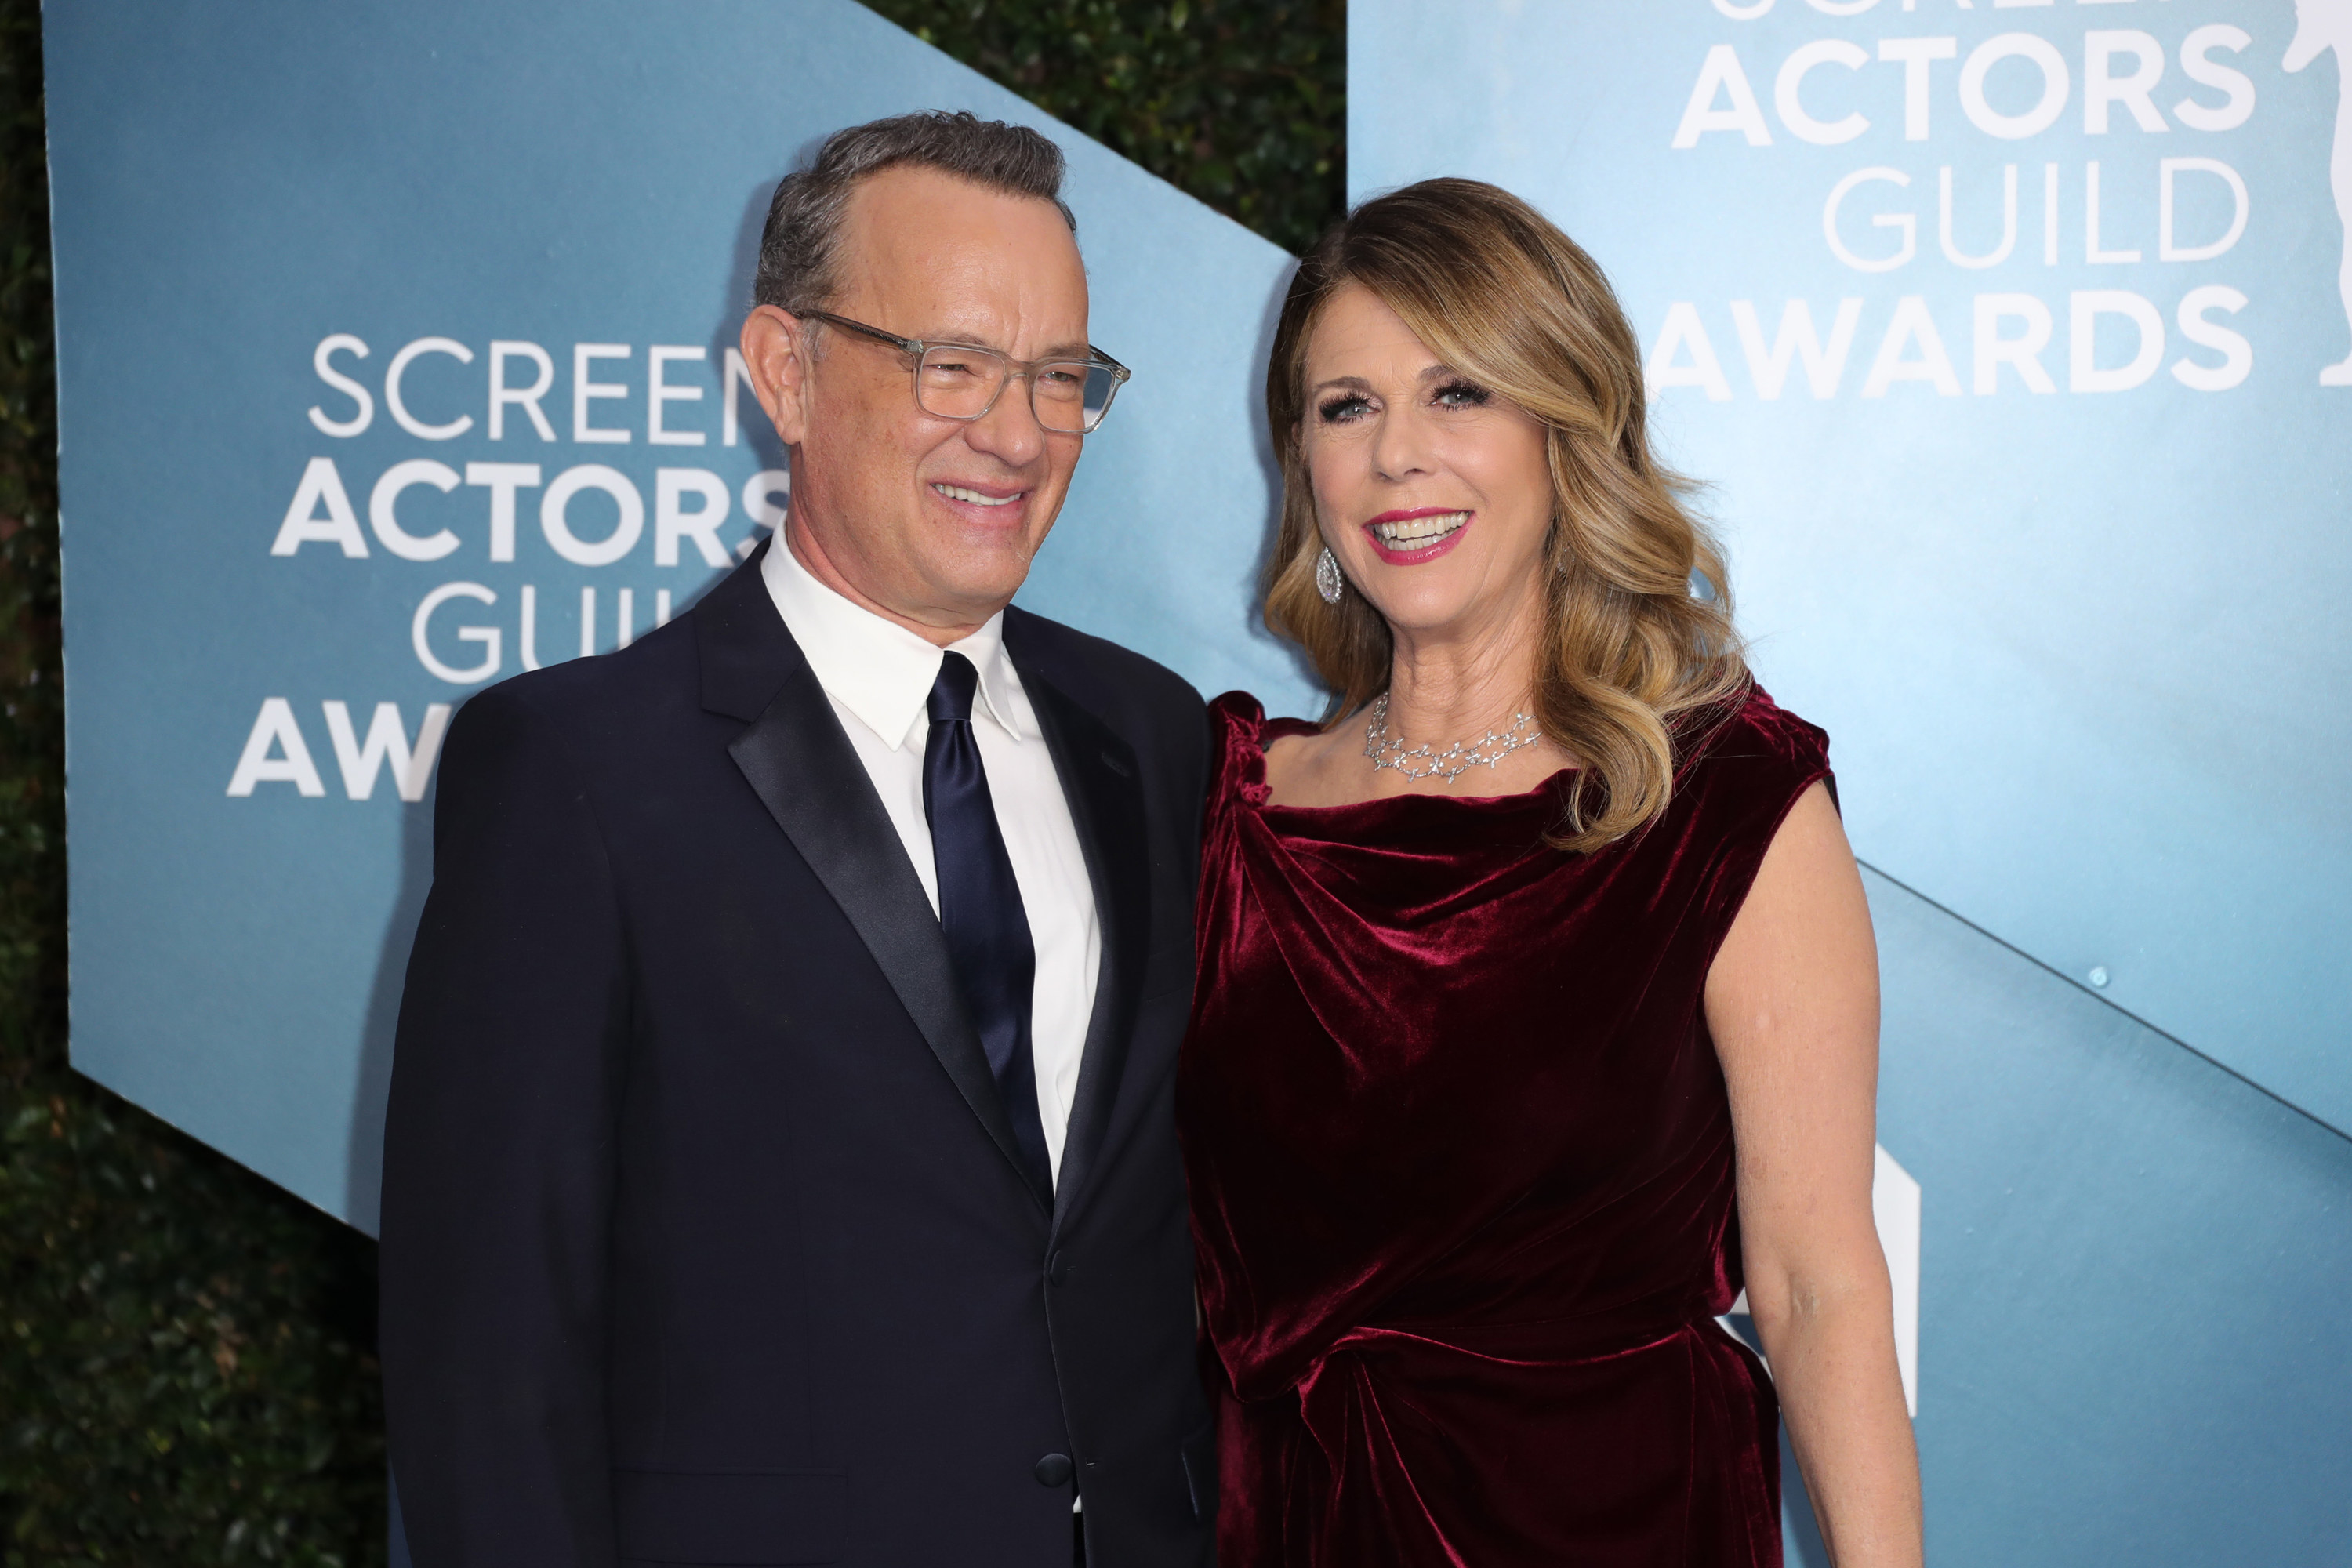 Tom Hanks and Rita Wilson attend 26th Annual Screen Actors Guild Awards at The Shrine Auditorium on January 19, 2020 in Los Angeles, California